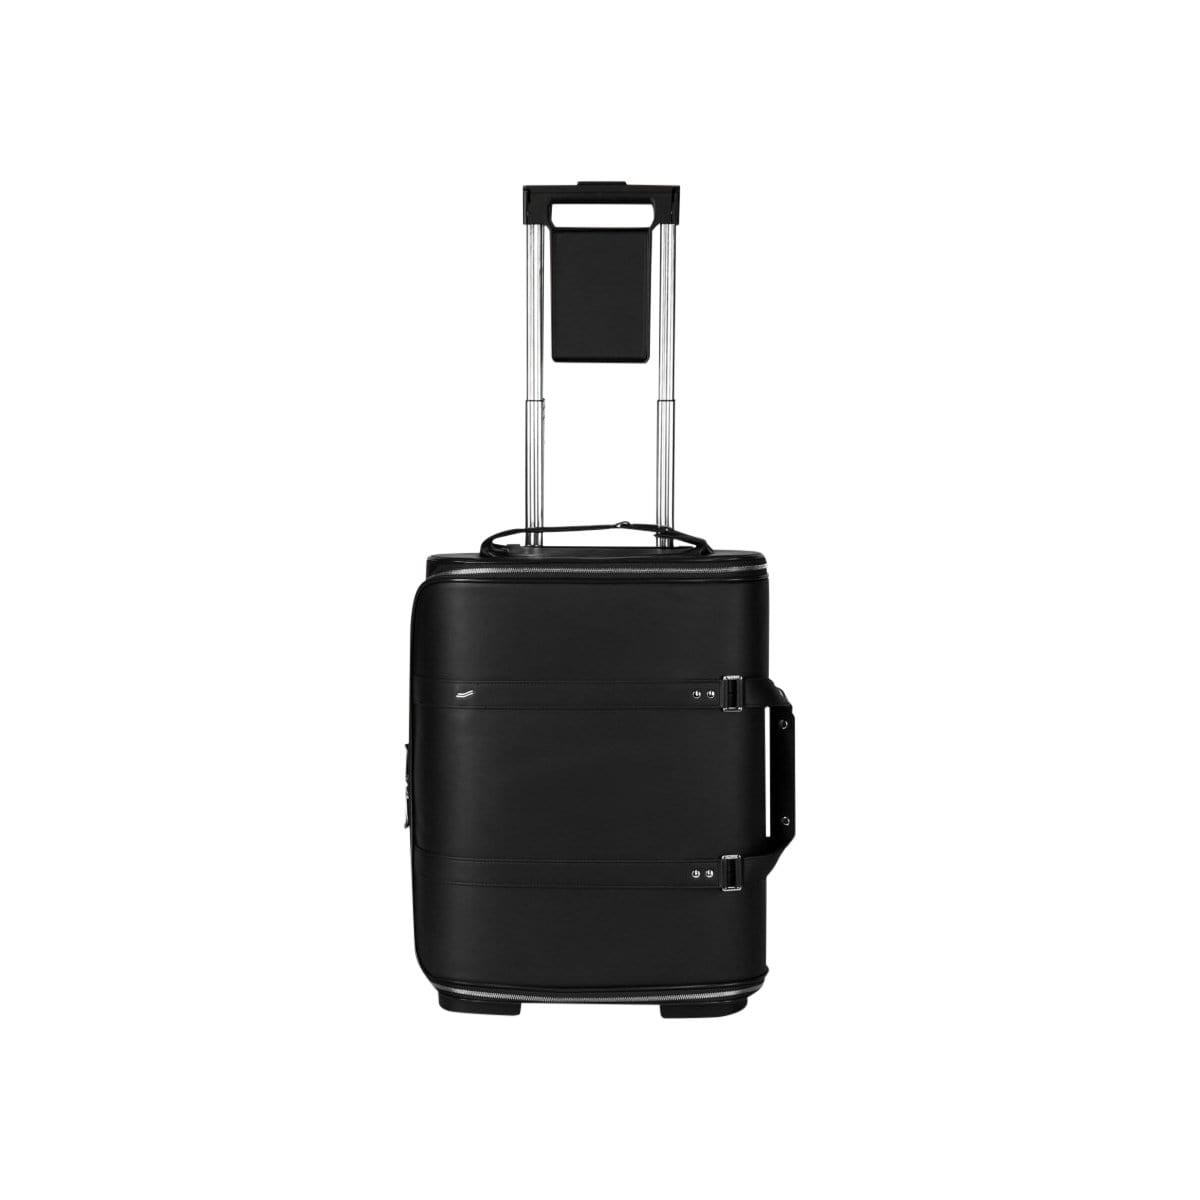 Vocier Luggage F38 Leather Carry-On Luggage